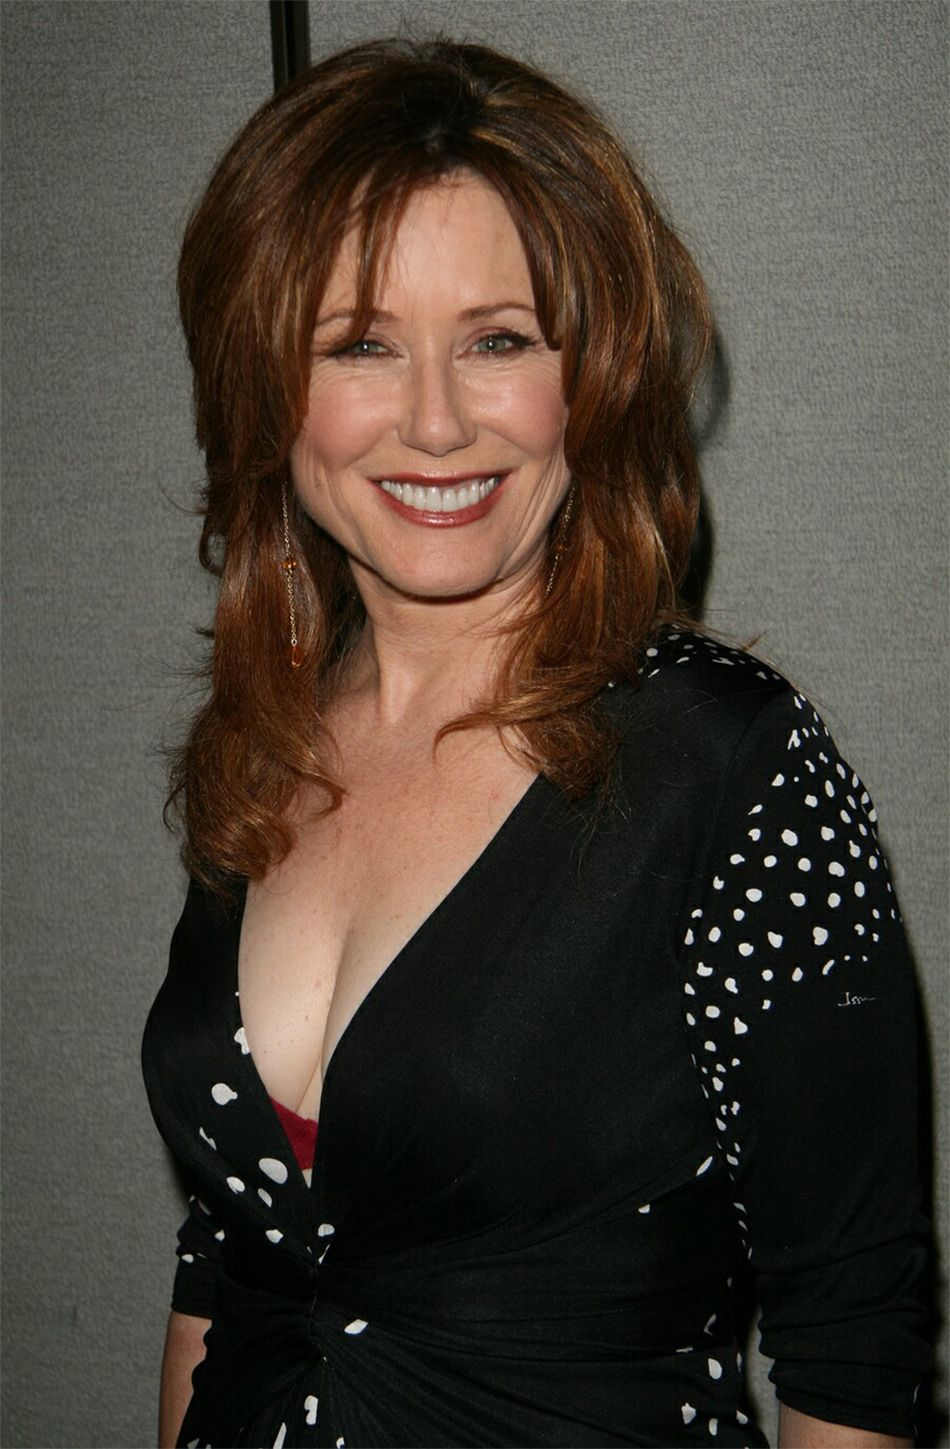 Mary mcdonnell porn pics